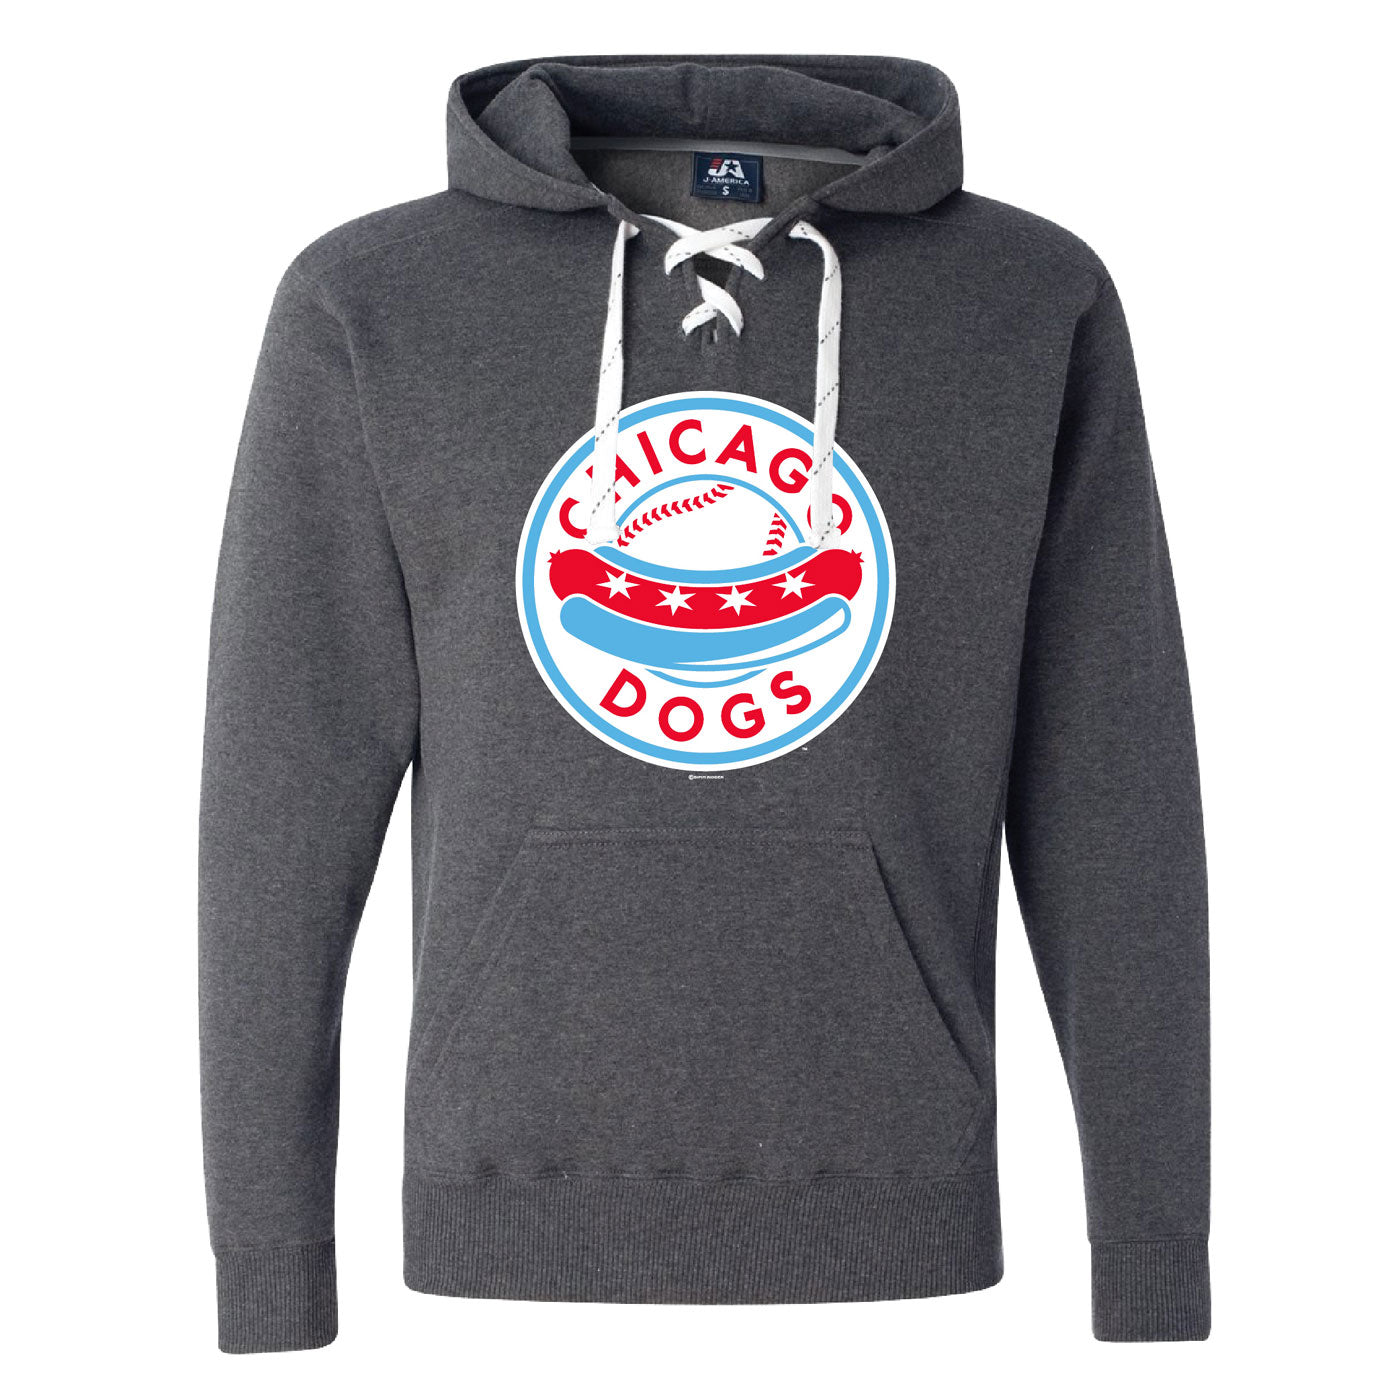 Chicago Dogs Bimm Ridder Men's Hockey Lace Up Hoodie - Grey - Chicago Dogs Team Store